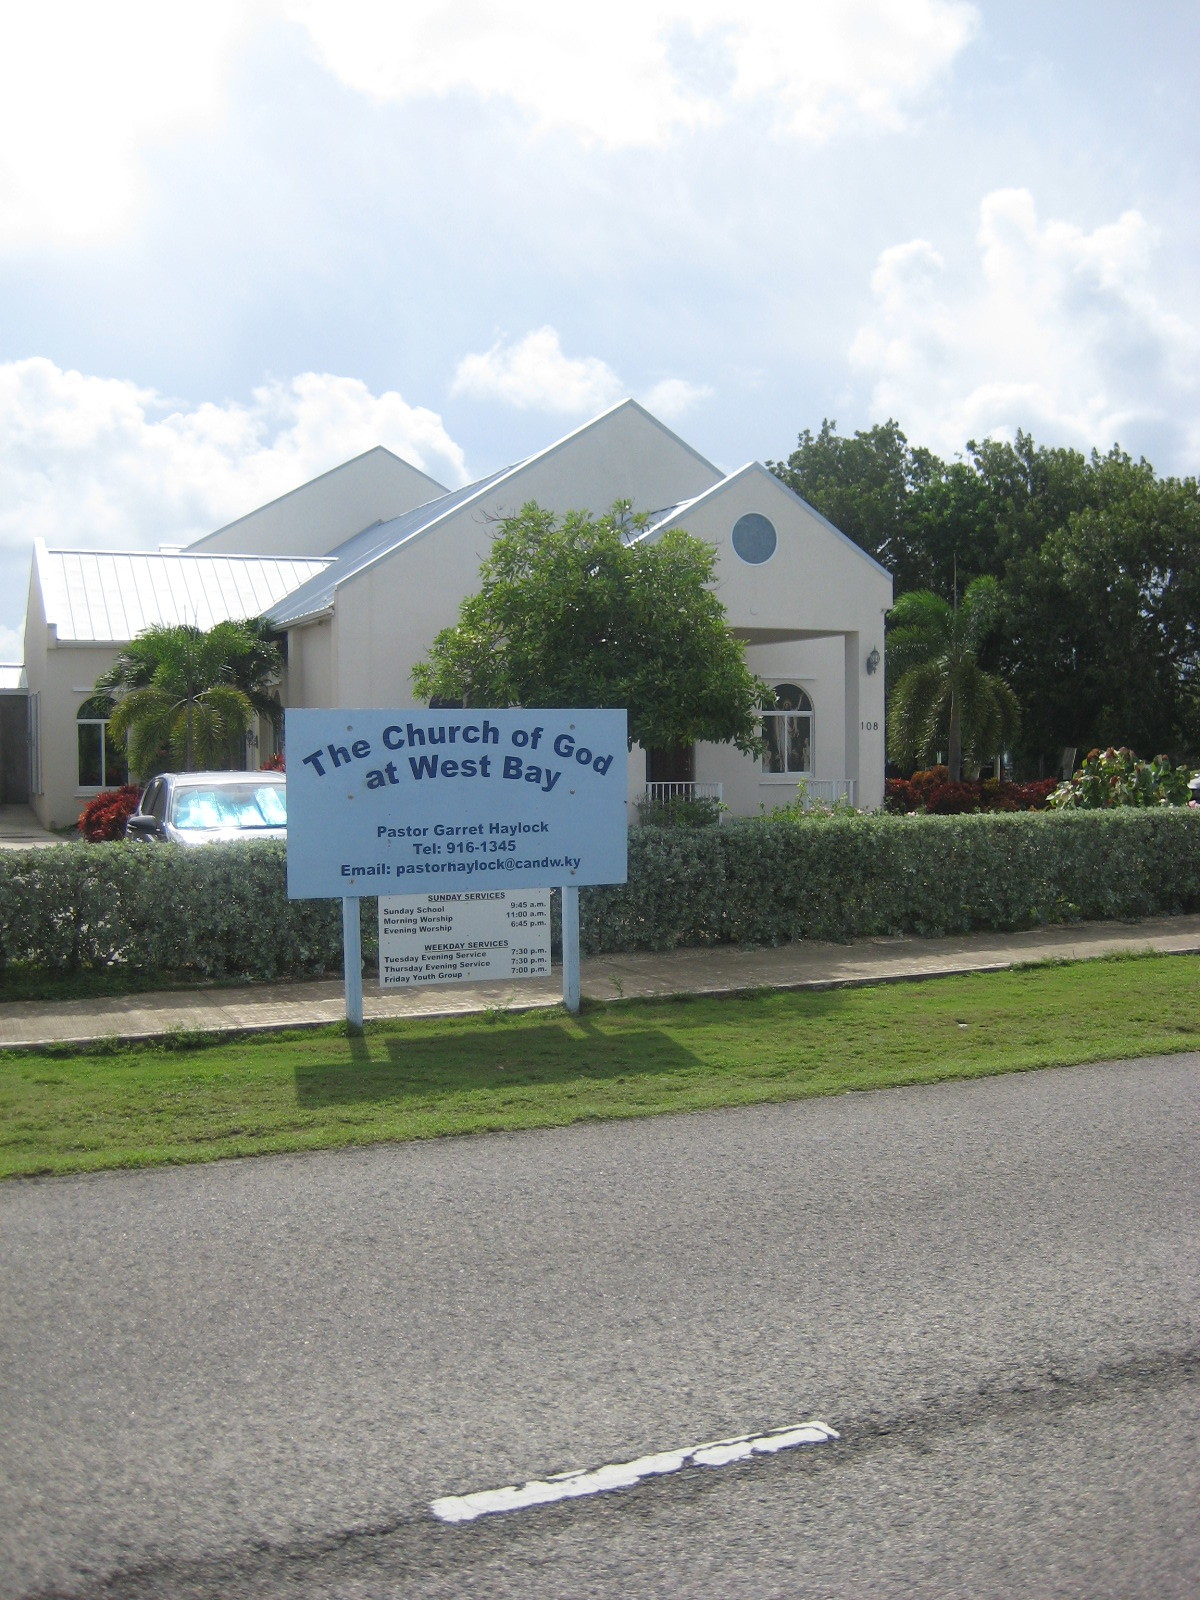 Church of God - West Bay, Cayman